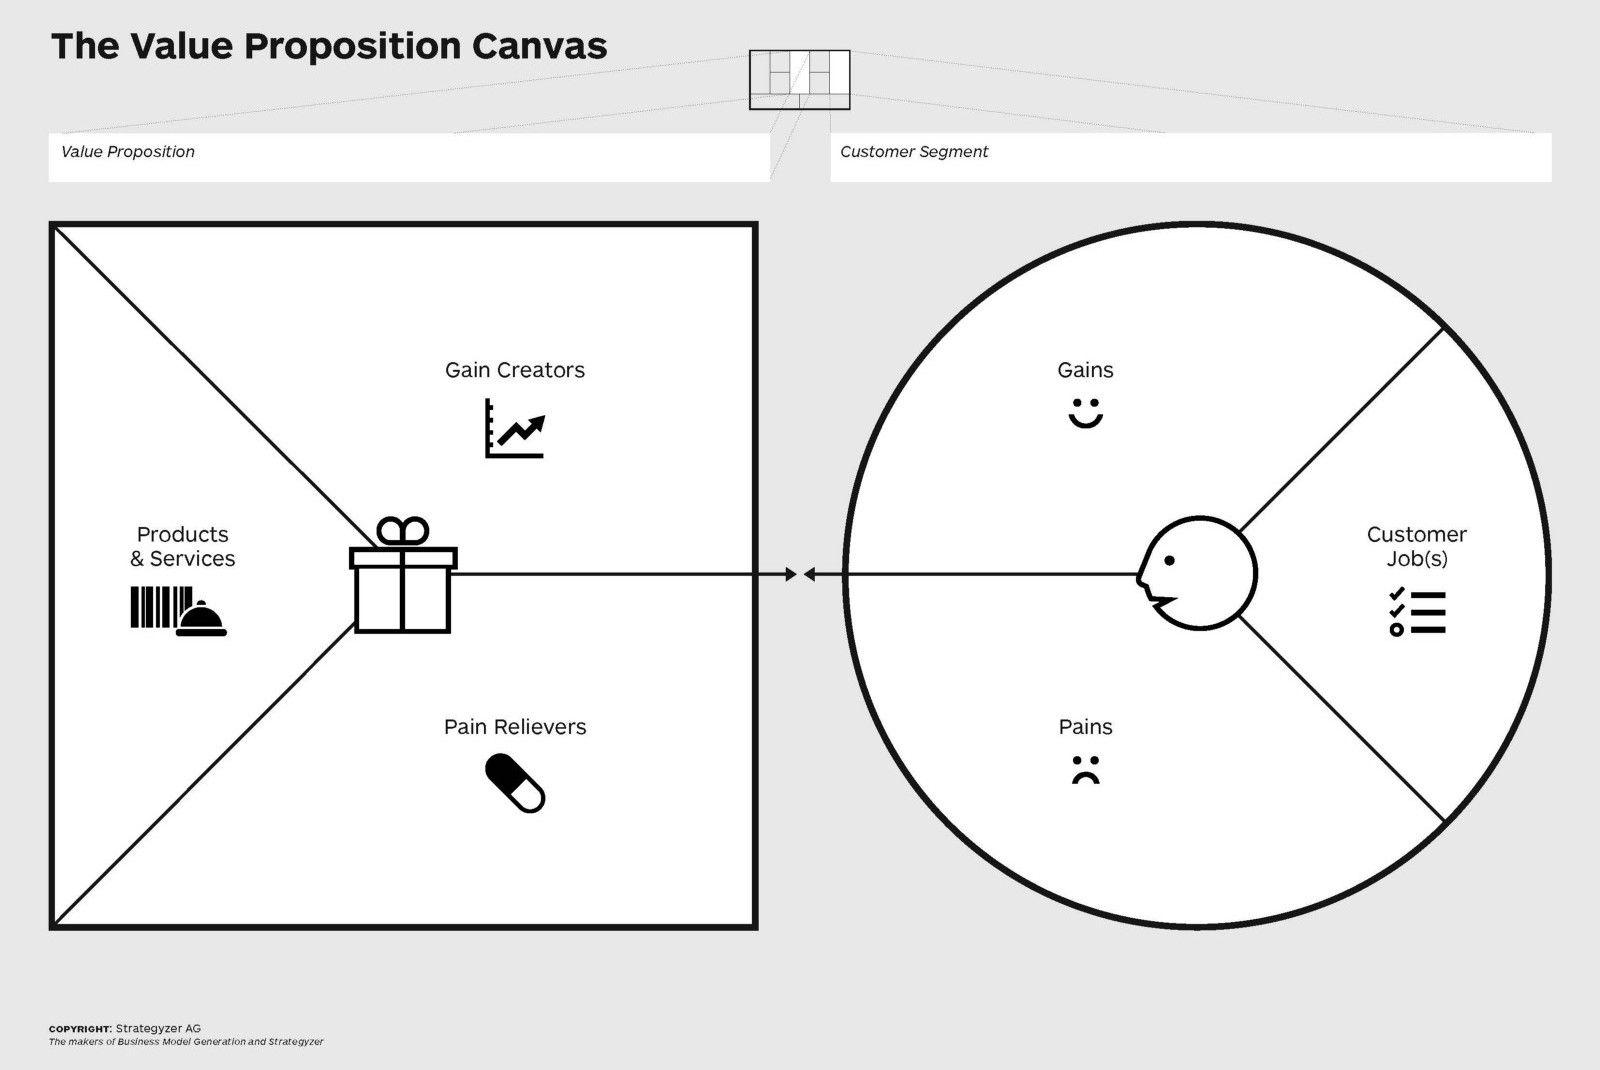 The template of Strategyzer's Value Proposition Canvas